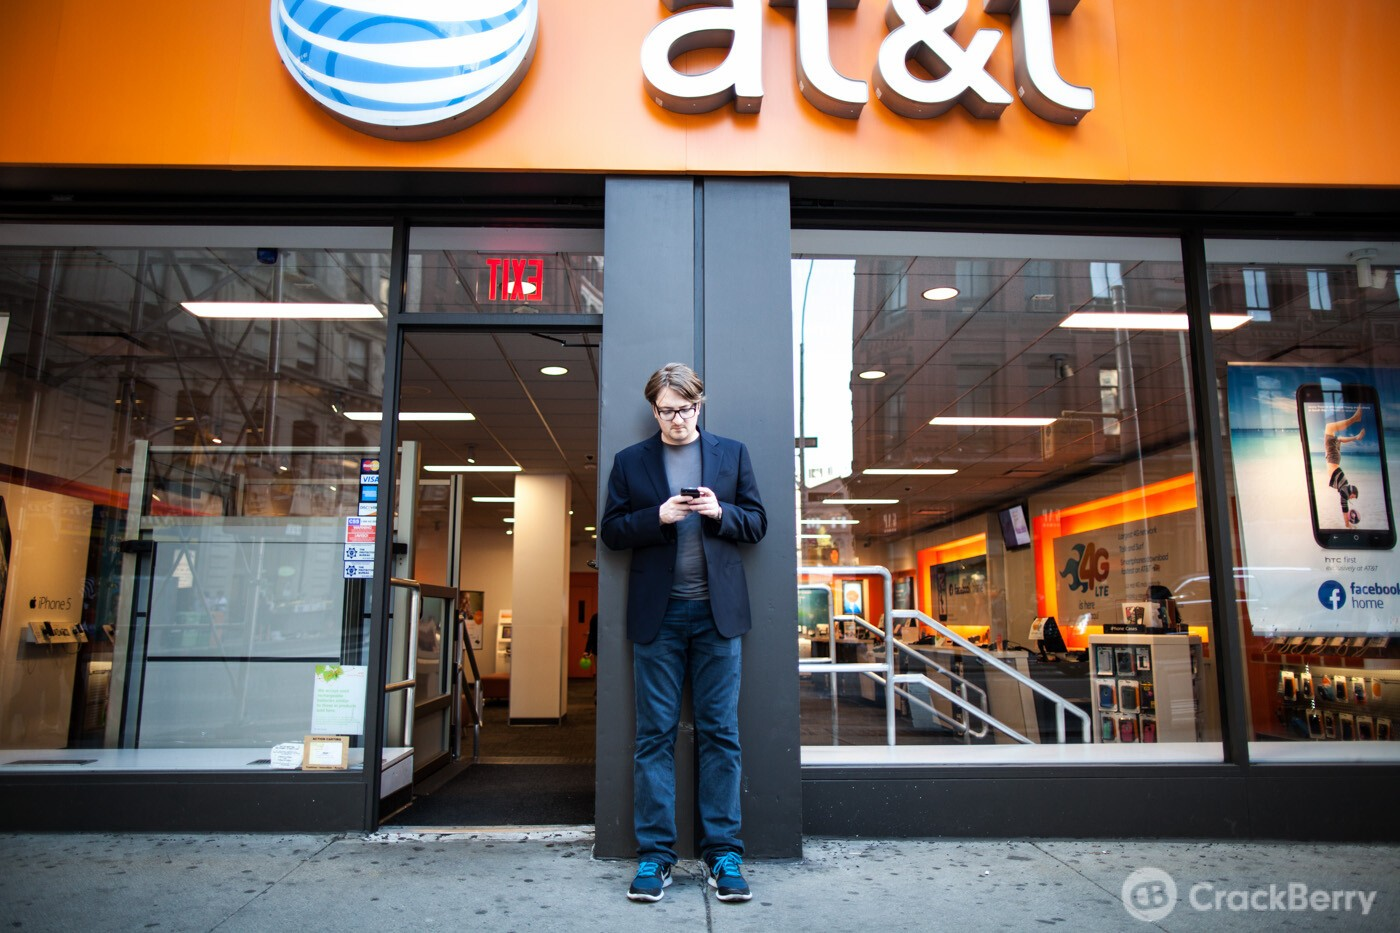 AT&T adds international LTE roaming in Spain, France, Japan, Australia, Singapore, and 8 other countries